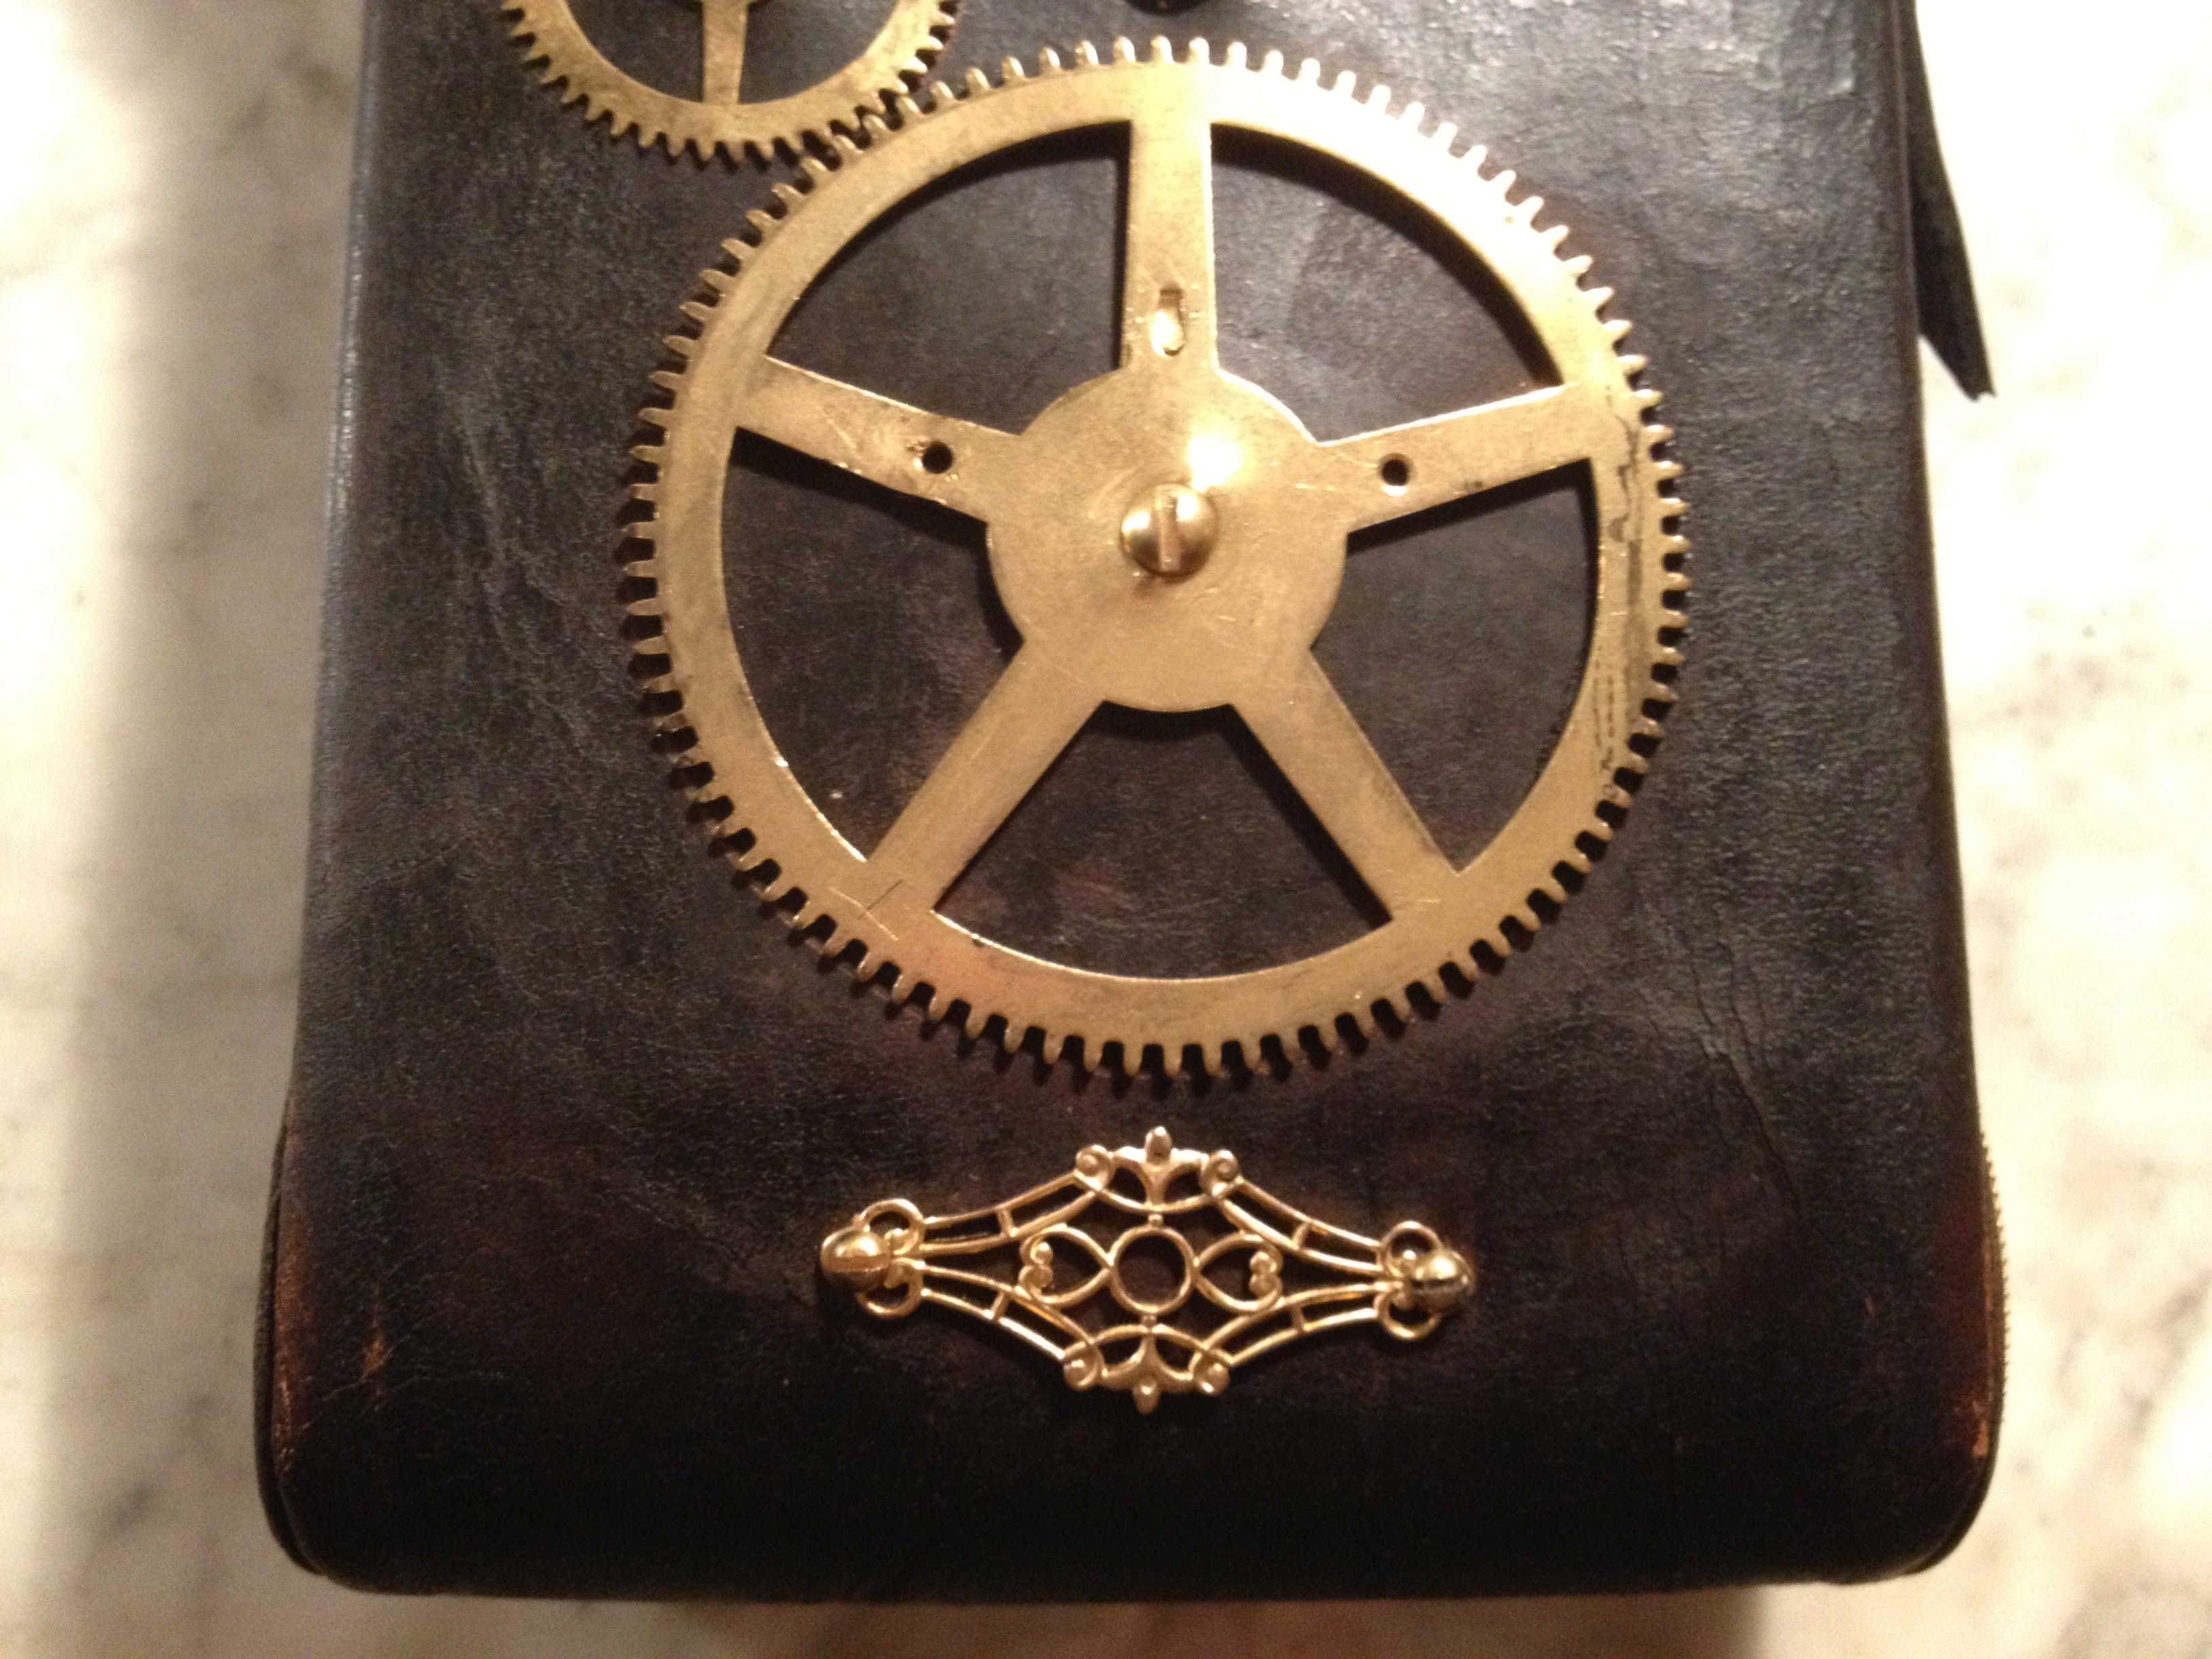 i_gearz_steampunk_adventure_case_medium_size_antique_leather_carry_case_p_368_bags_and_backpacks_5.JPG